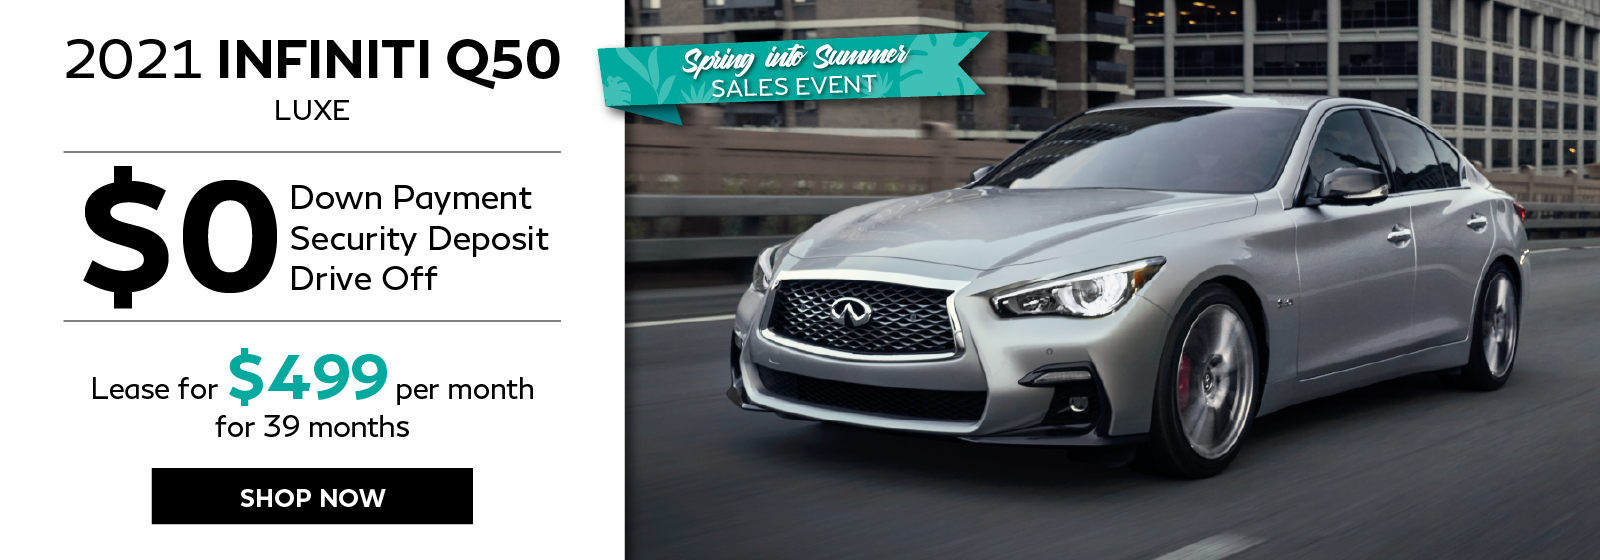 Spring Into Summer Sales Event. 2021 Q50 zero down leasse offer. Click to shop now.